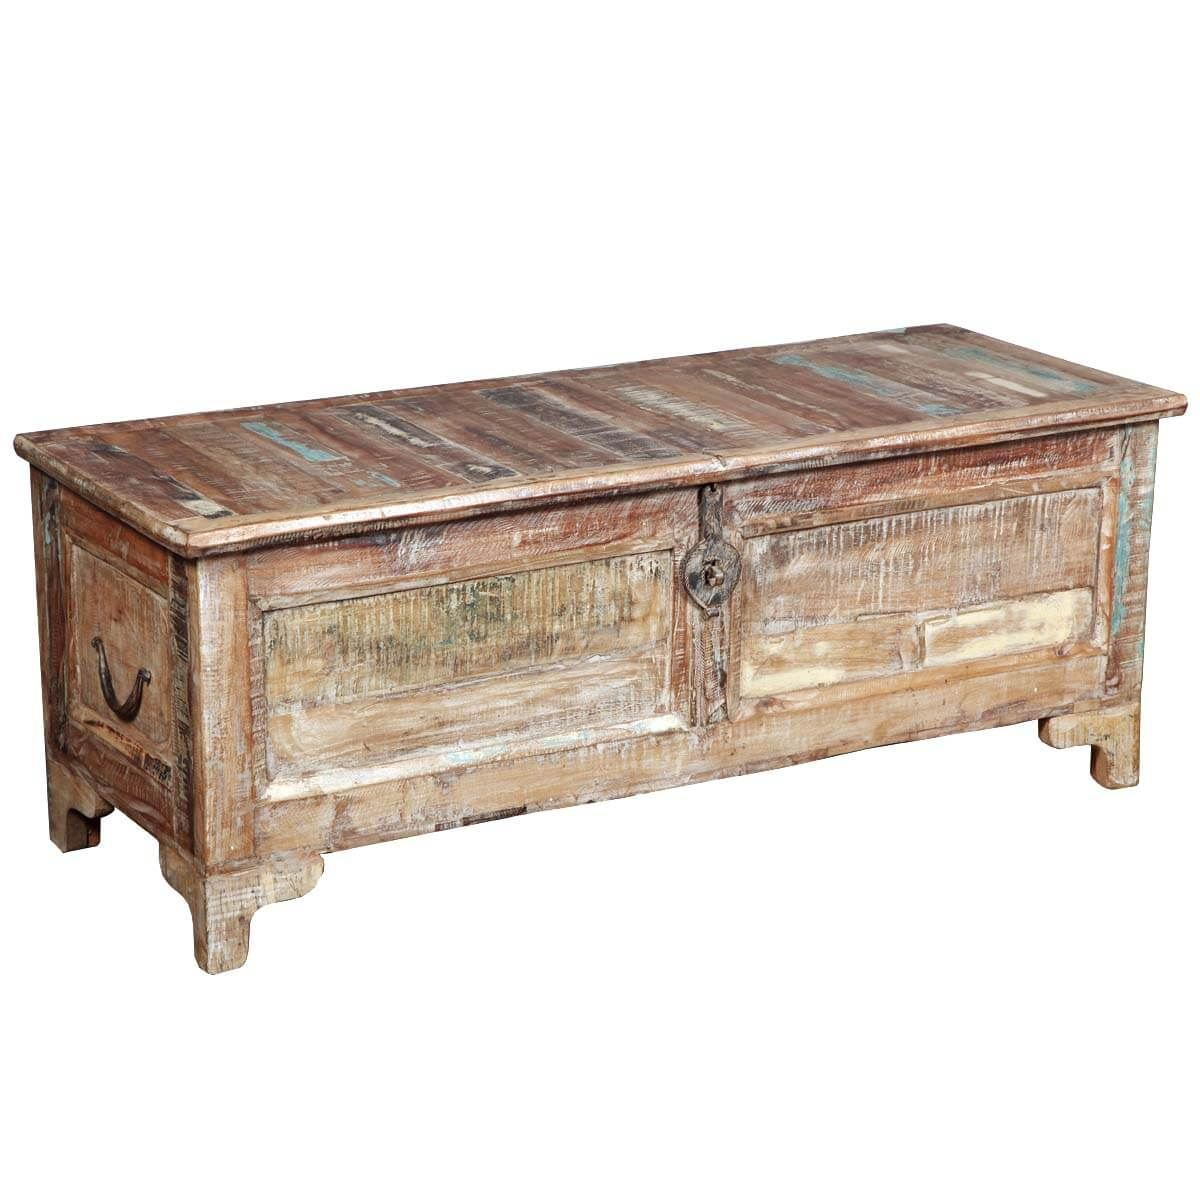 Rustic Reclaimed Wood Storage Coffee Table Chest